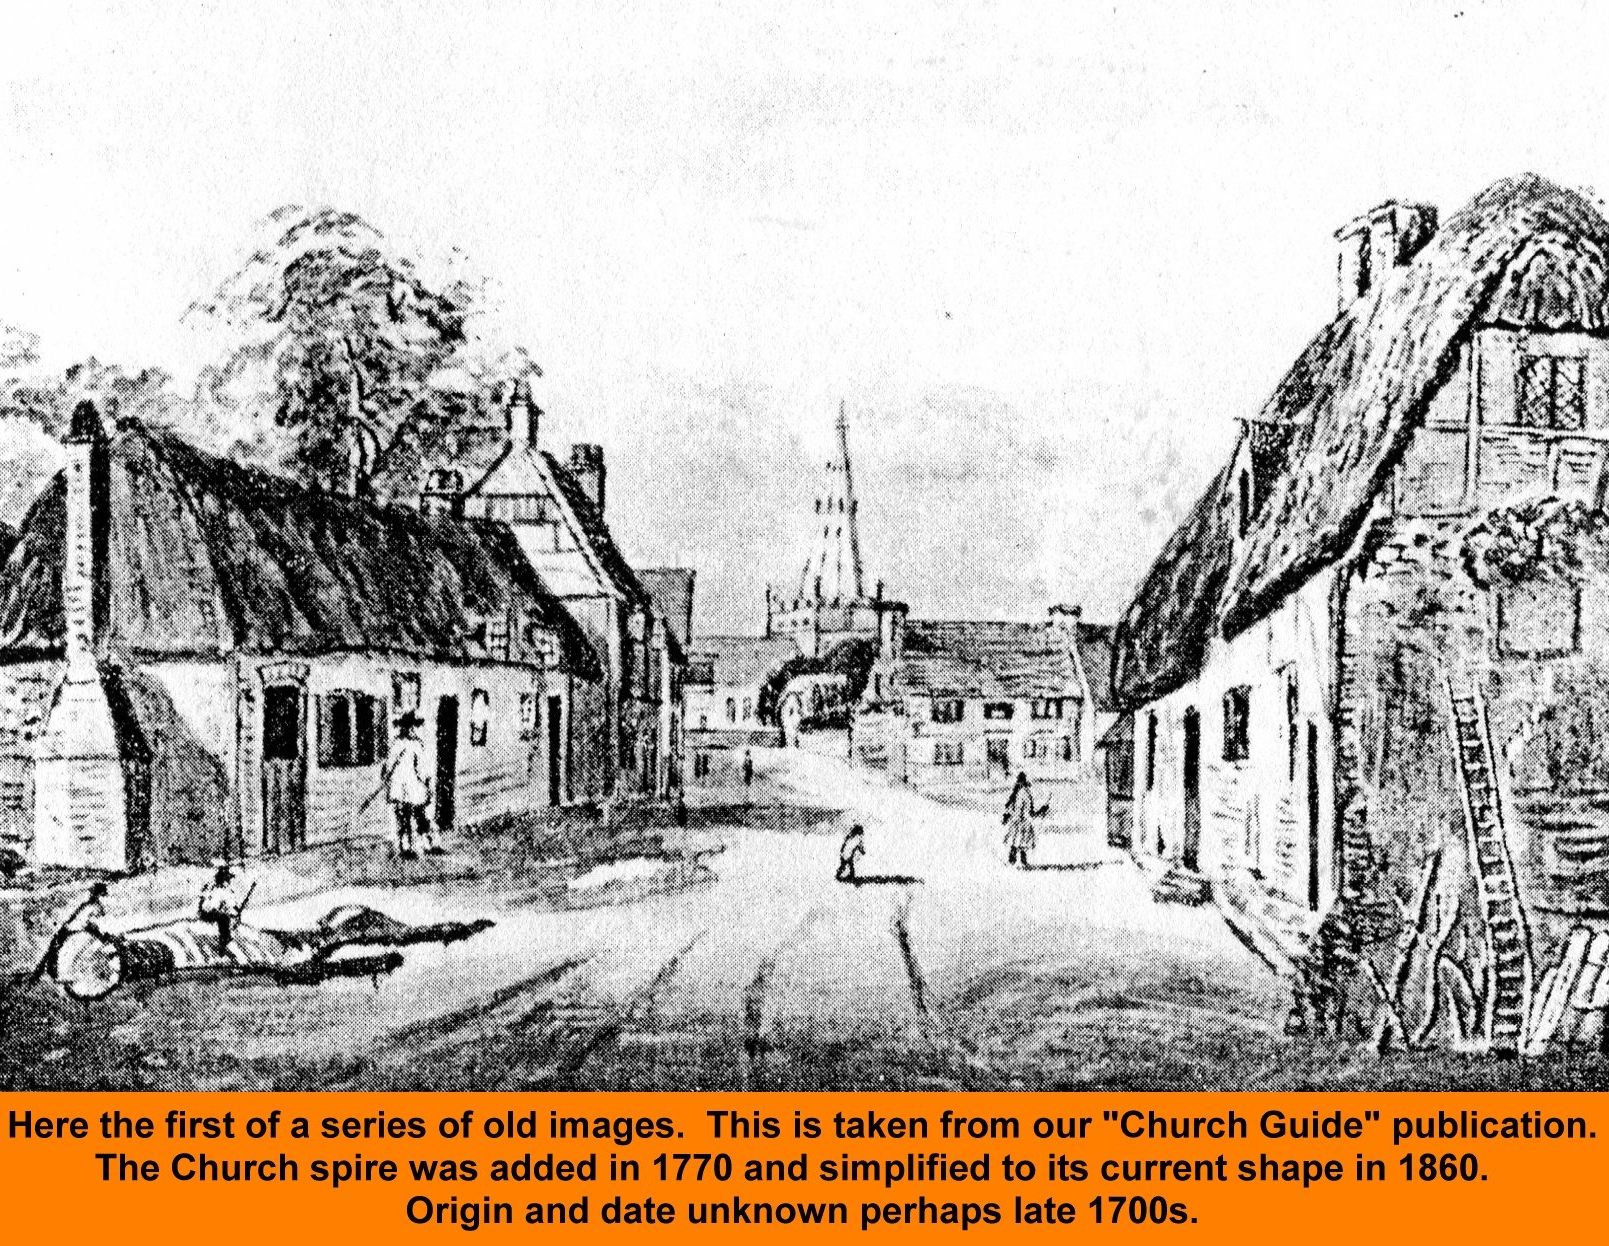 WESTBOURNE HISTORY PHOTO, CENTRE, SQUARE, CHURCH TOWER SPIRE, 1770, GUIDE, EARLY DRAWING